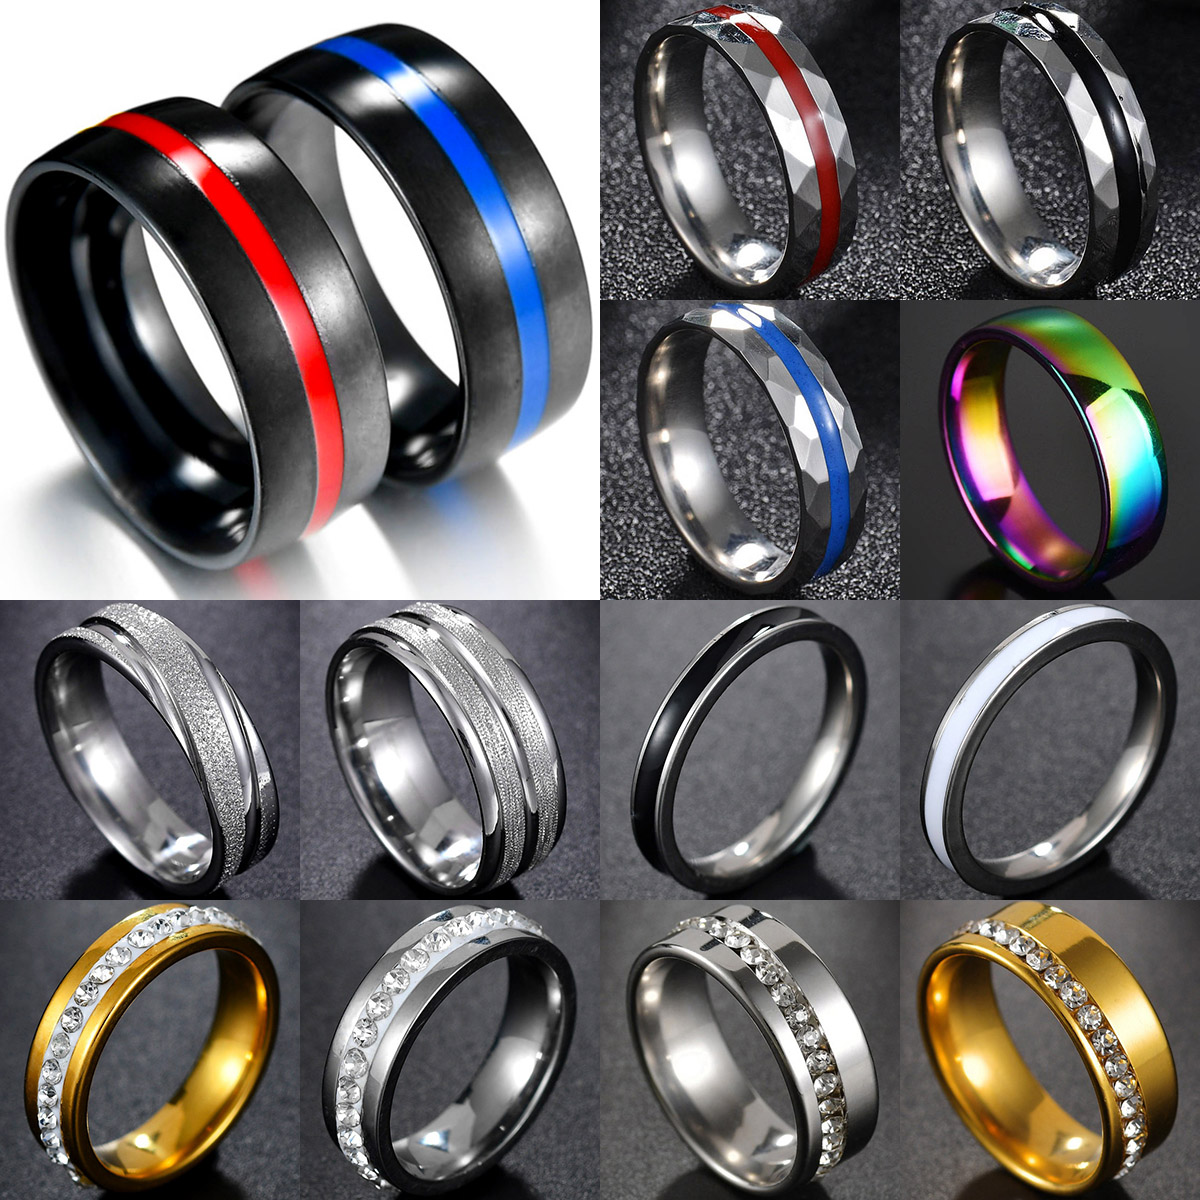 New Keisha Lena Mens Ring firefighter Thin blue red line Stainless Steel Gift